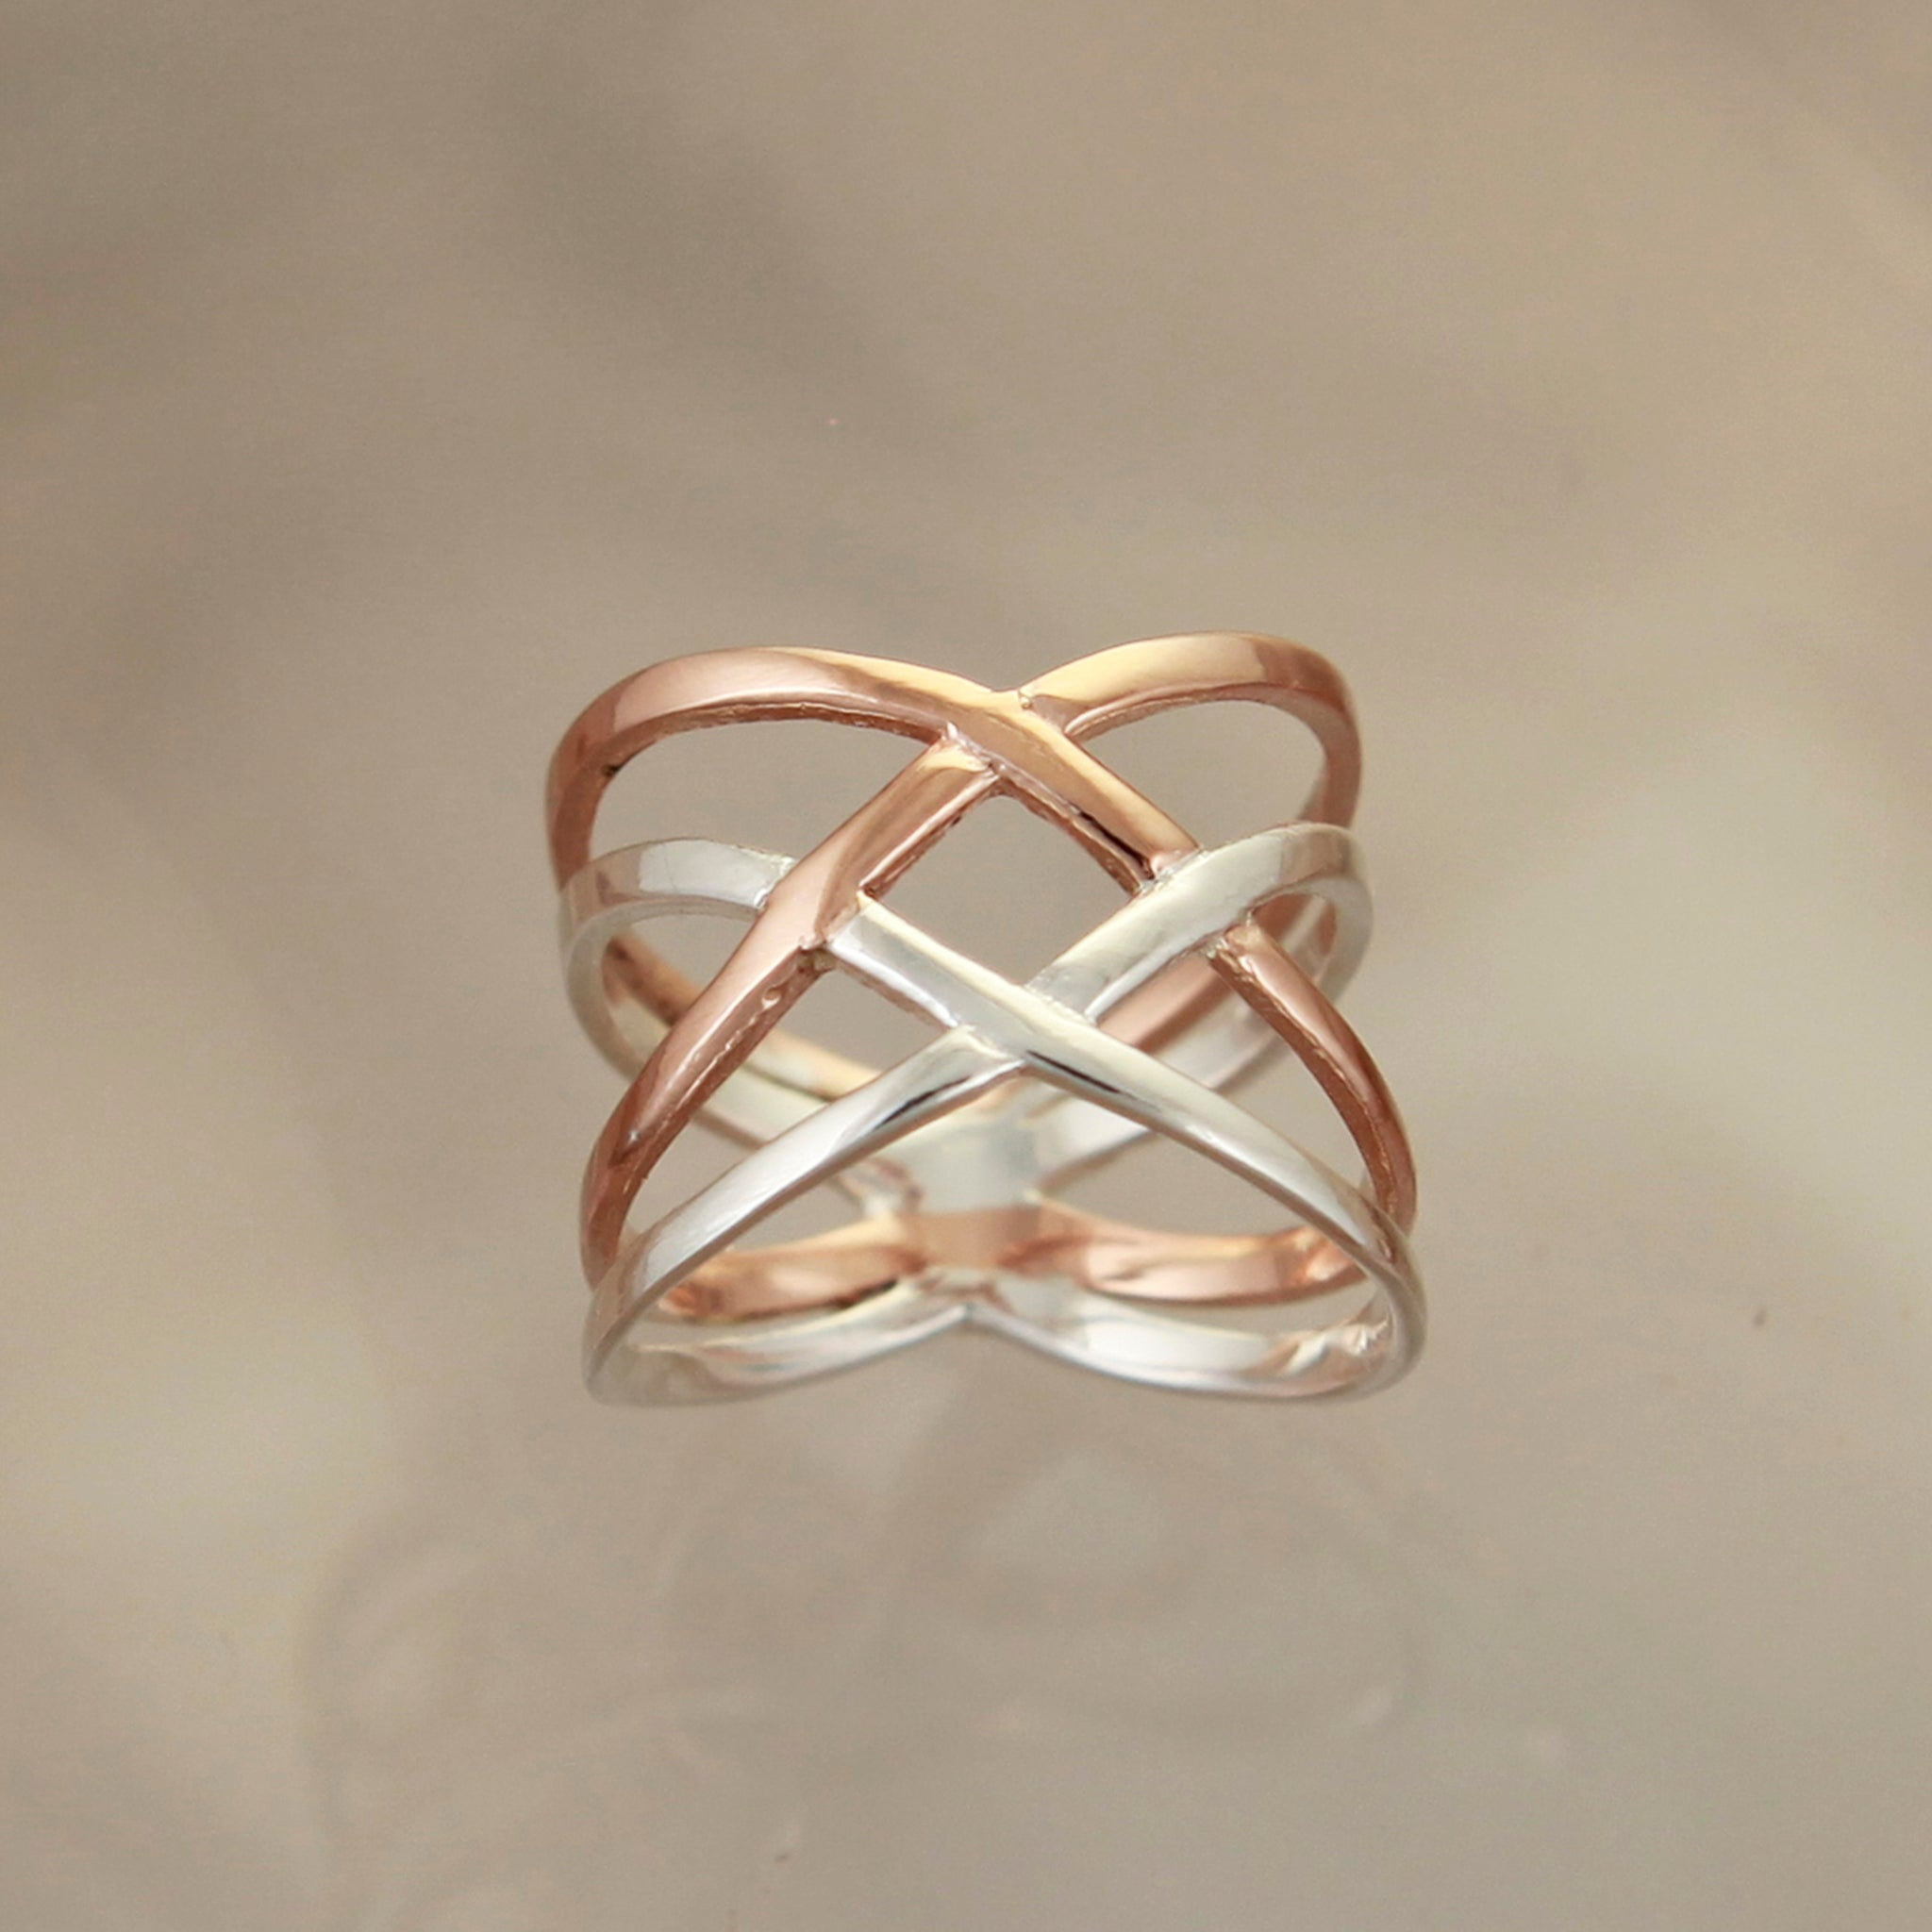 Silver and Rose Gold Crossover Ring